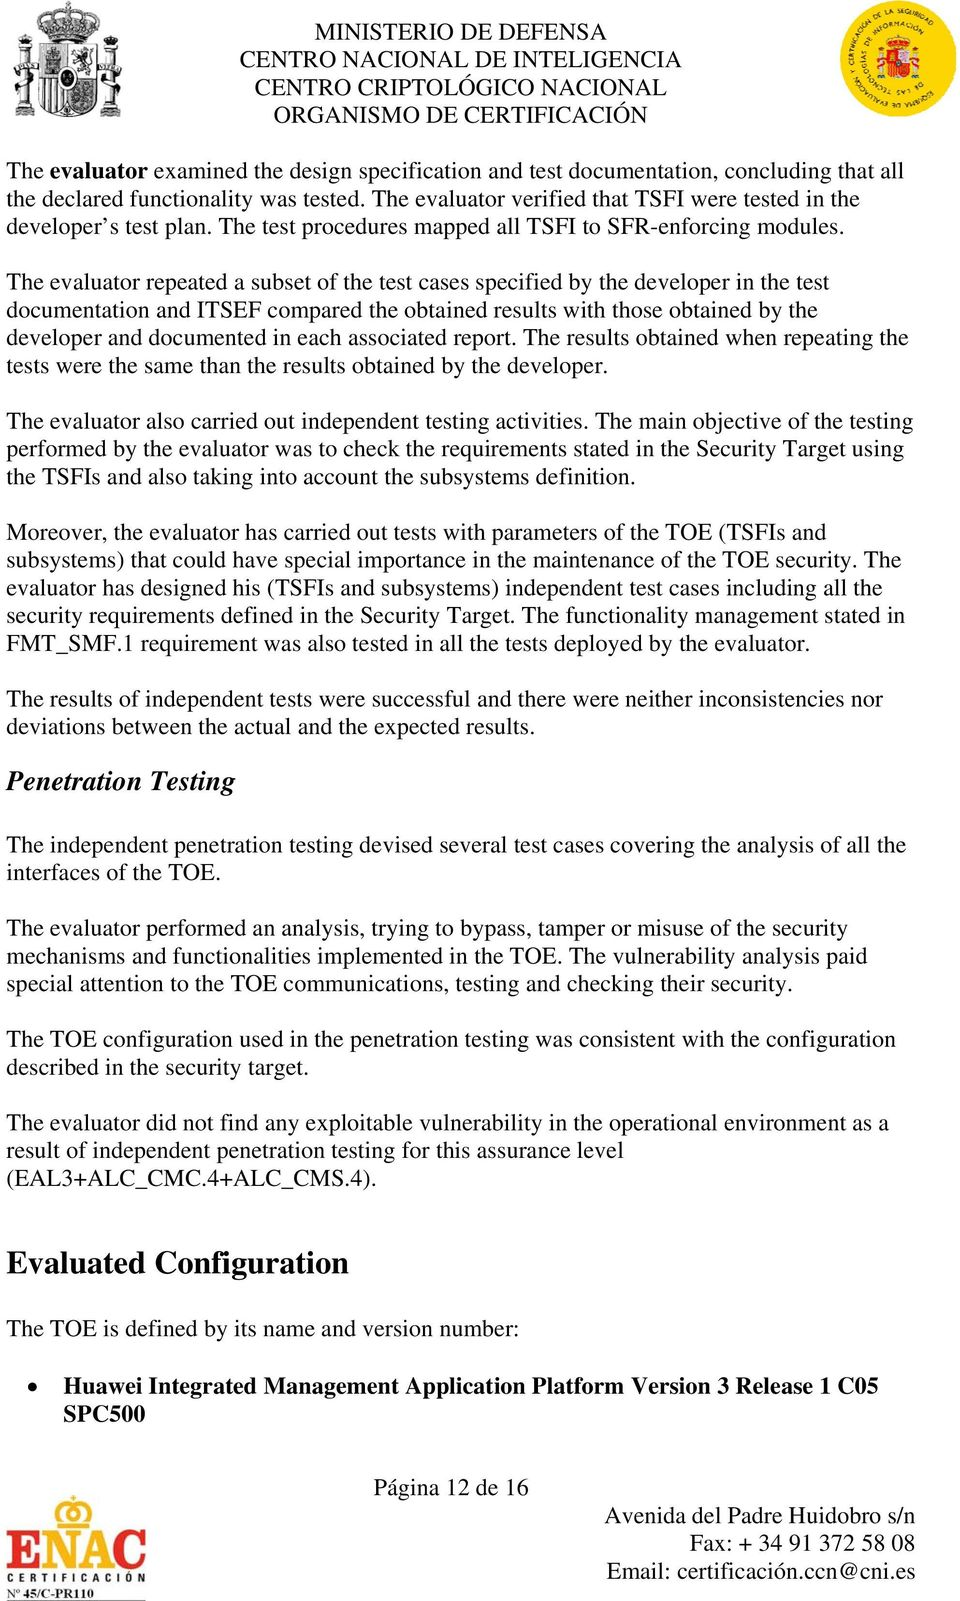 The evaluator repeated a subset of the test cases specified by the developer in the test documentation and ITSEF compared the obtained results with those obtained by the developer and documented in